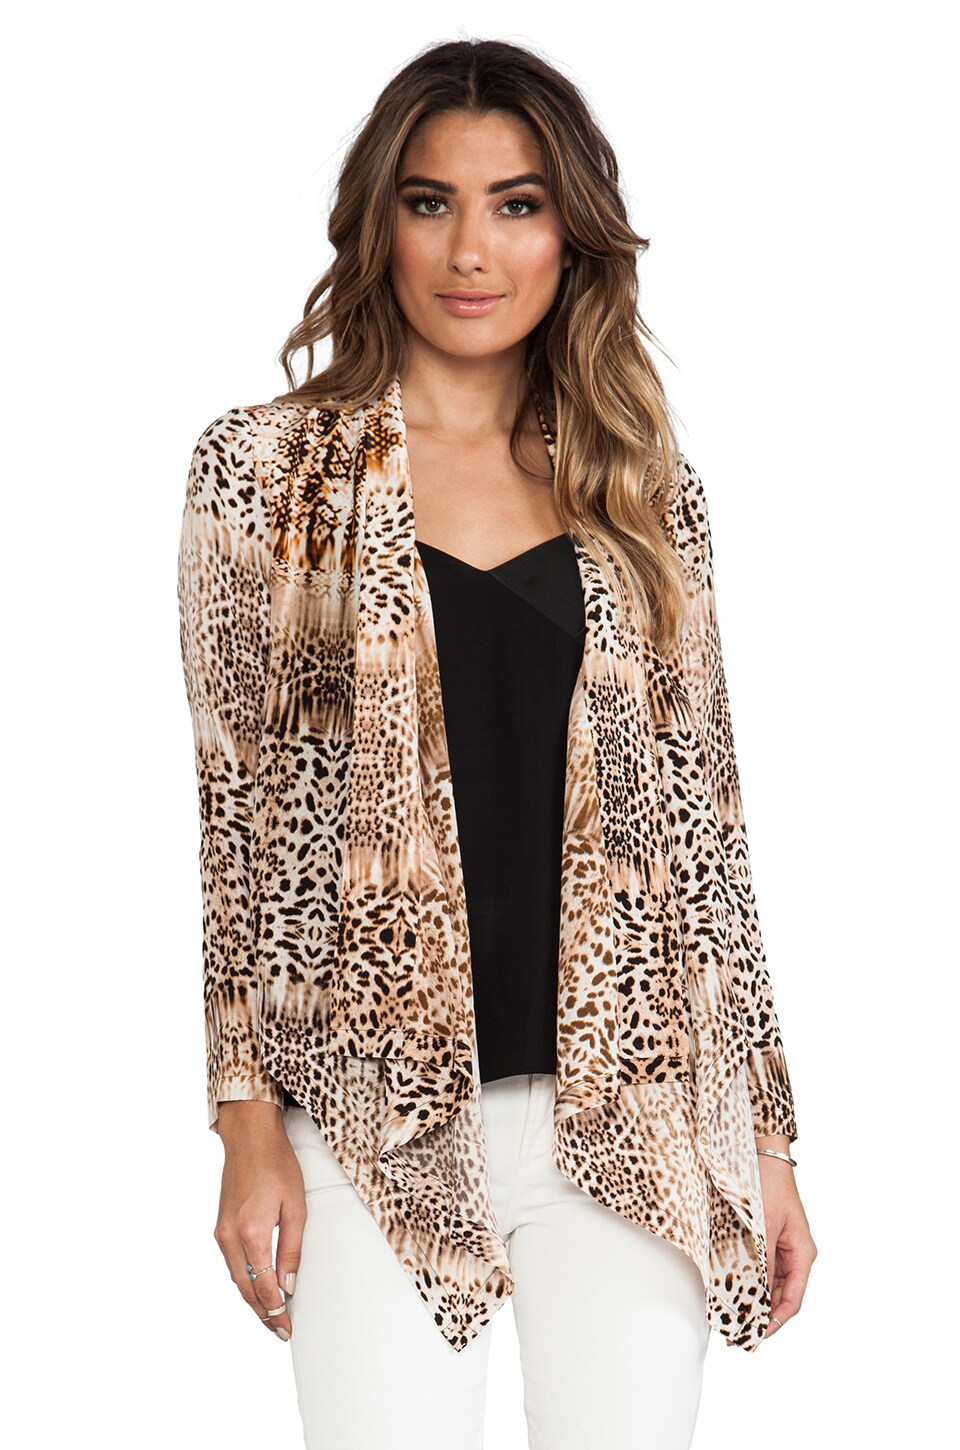 Twelfth Street By Cynthia Vincent Drape Front Jacket in Leopard